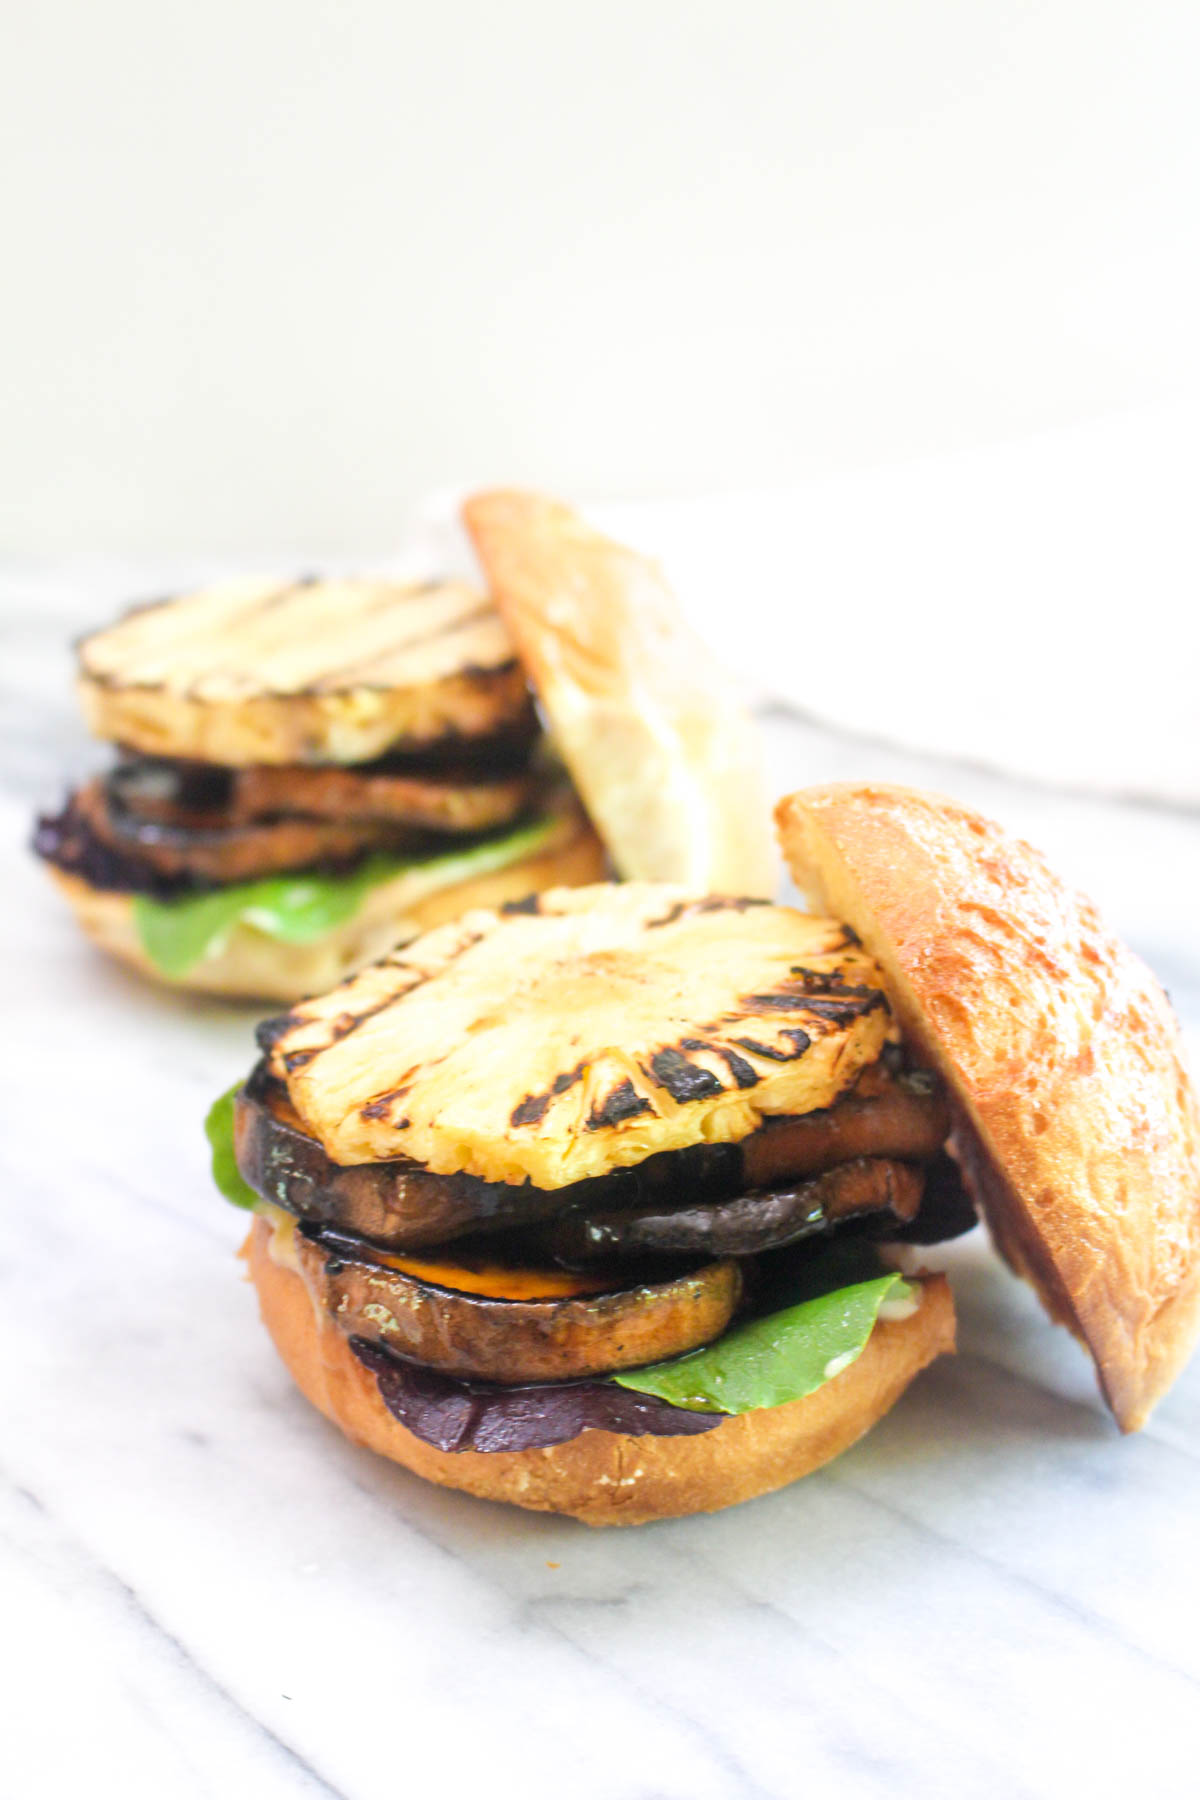 Two burger buns filled with grilled sweet potatoes, grilled pineapple, and mixed greens with the top buns off.